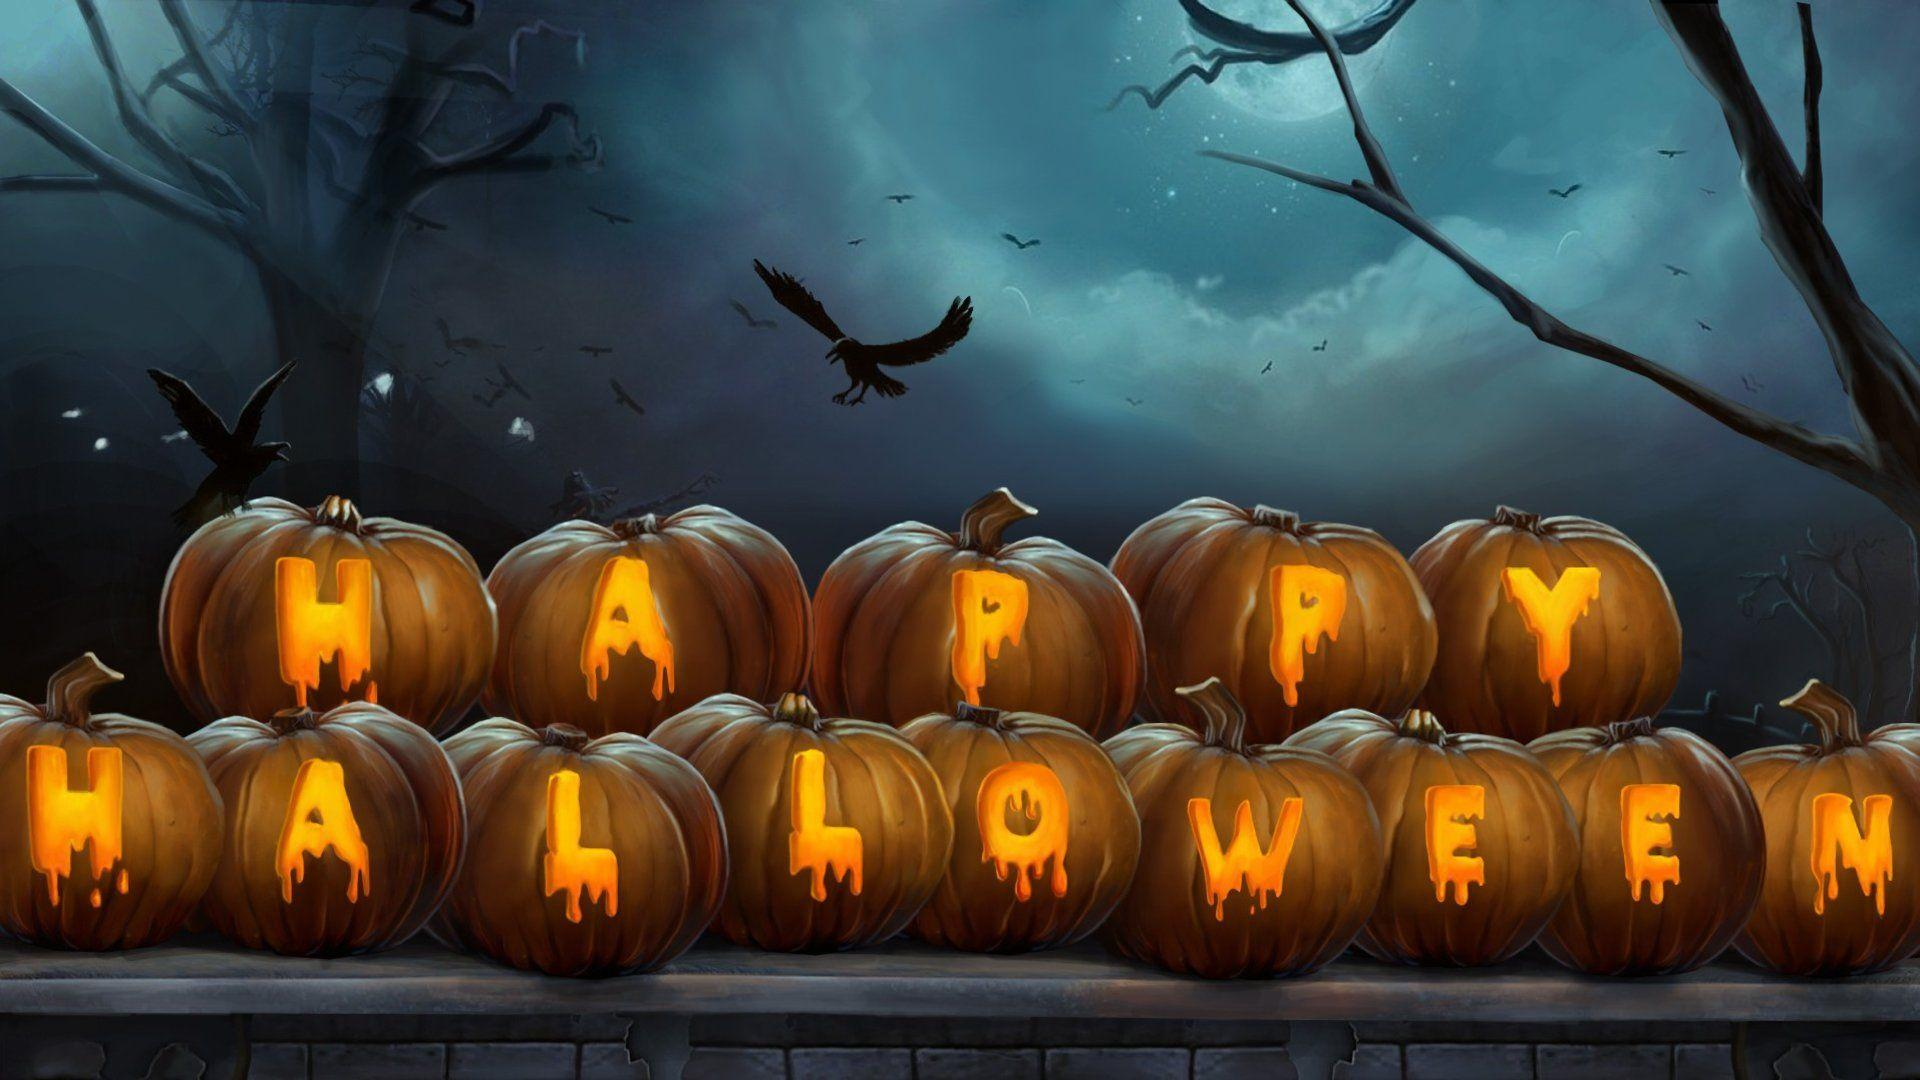 Check out the Halloween deals 1byone is offering at Amazon.com